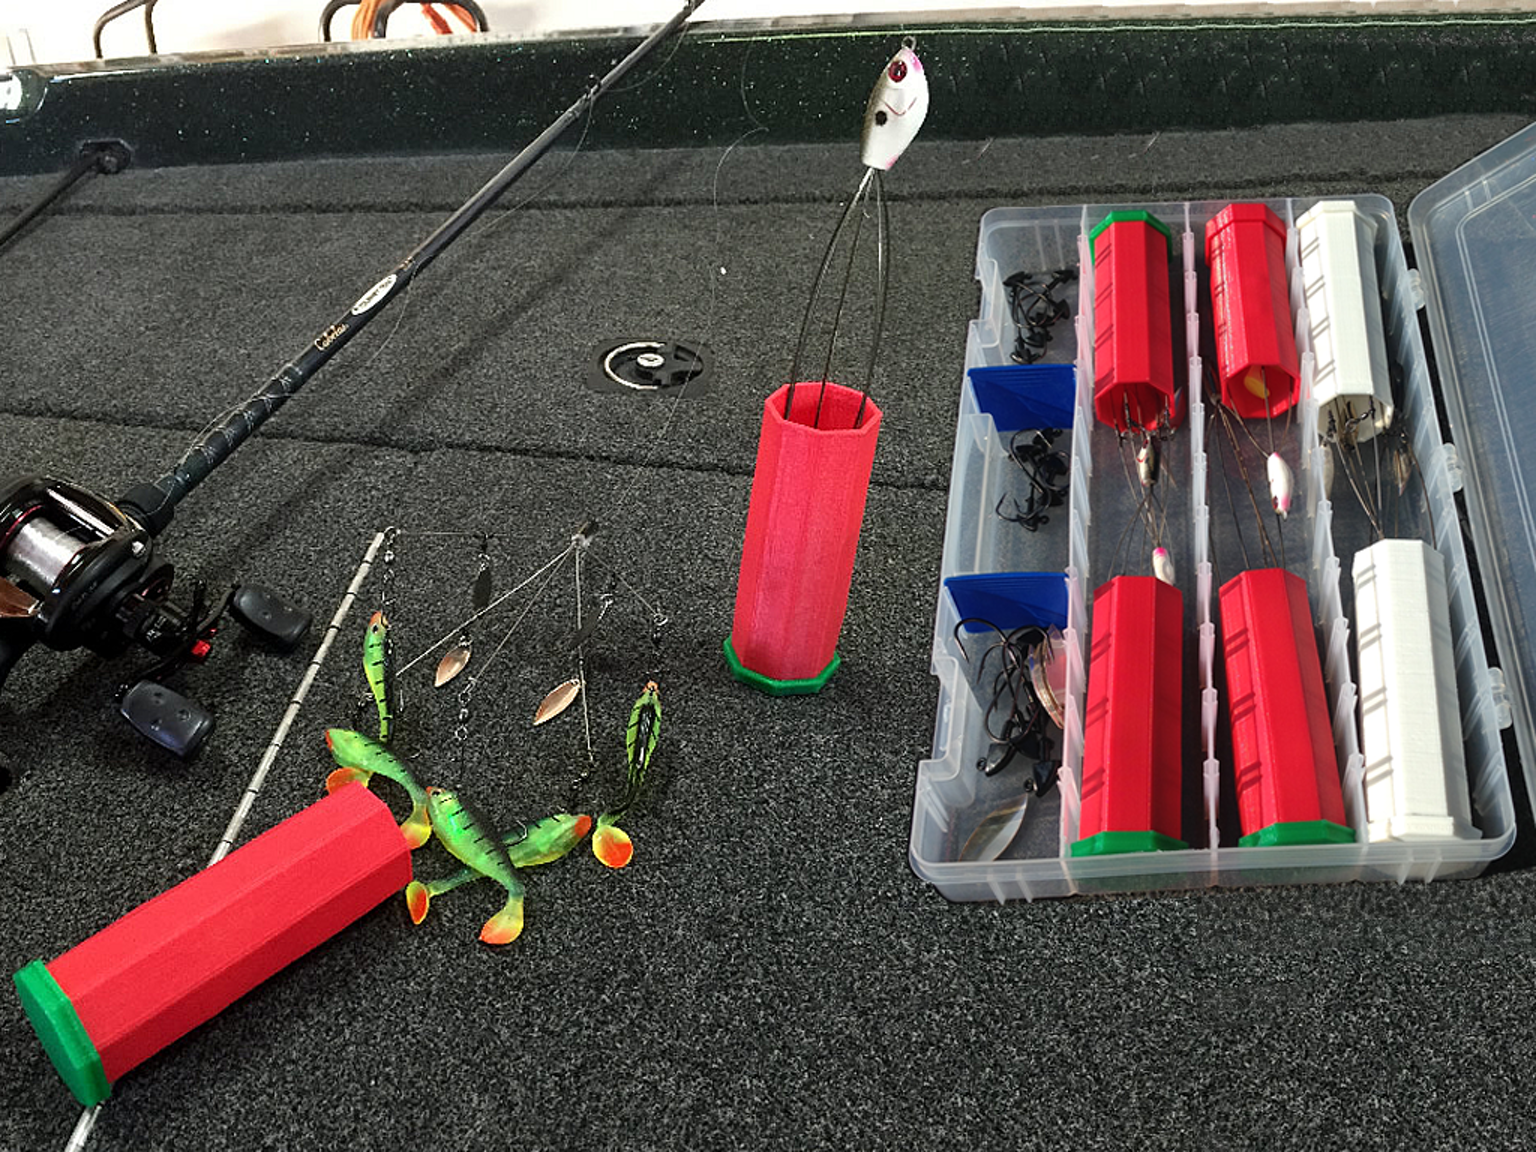 Safe Storage Easy Tie On For Umbrella Rigs Alabama With The Knot Tying Diagrams Http Wwwfintalkcom Fishingknots Nailknot Tube Makes Changing A Palomar Breeze Kickstart Us